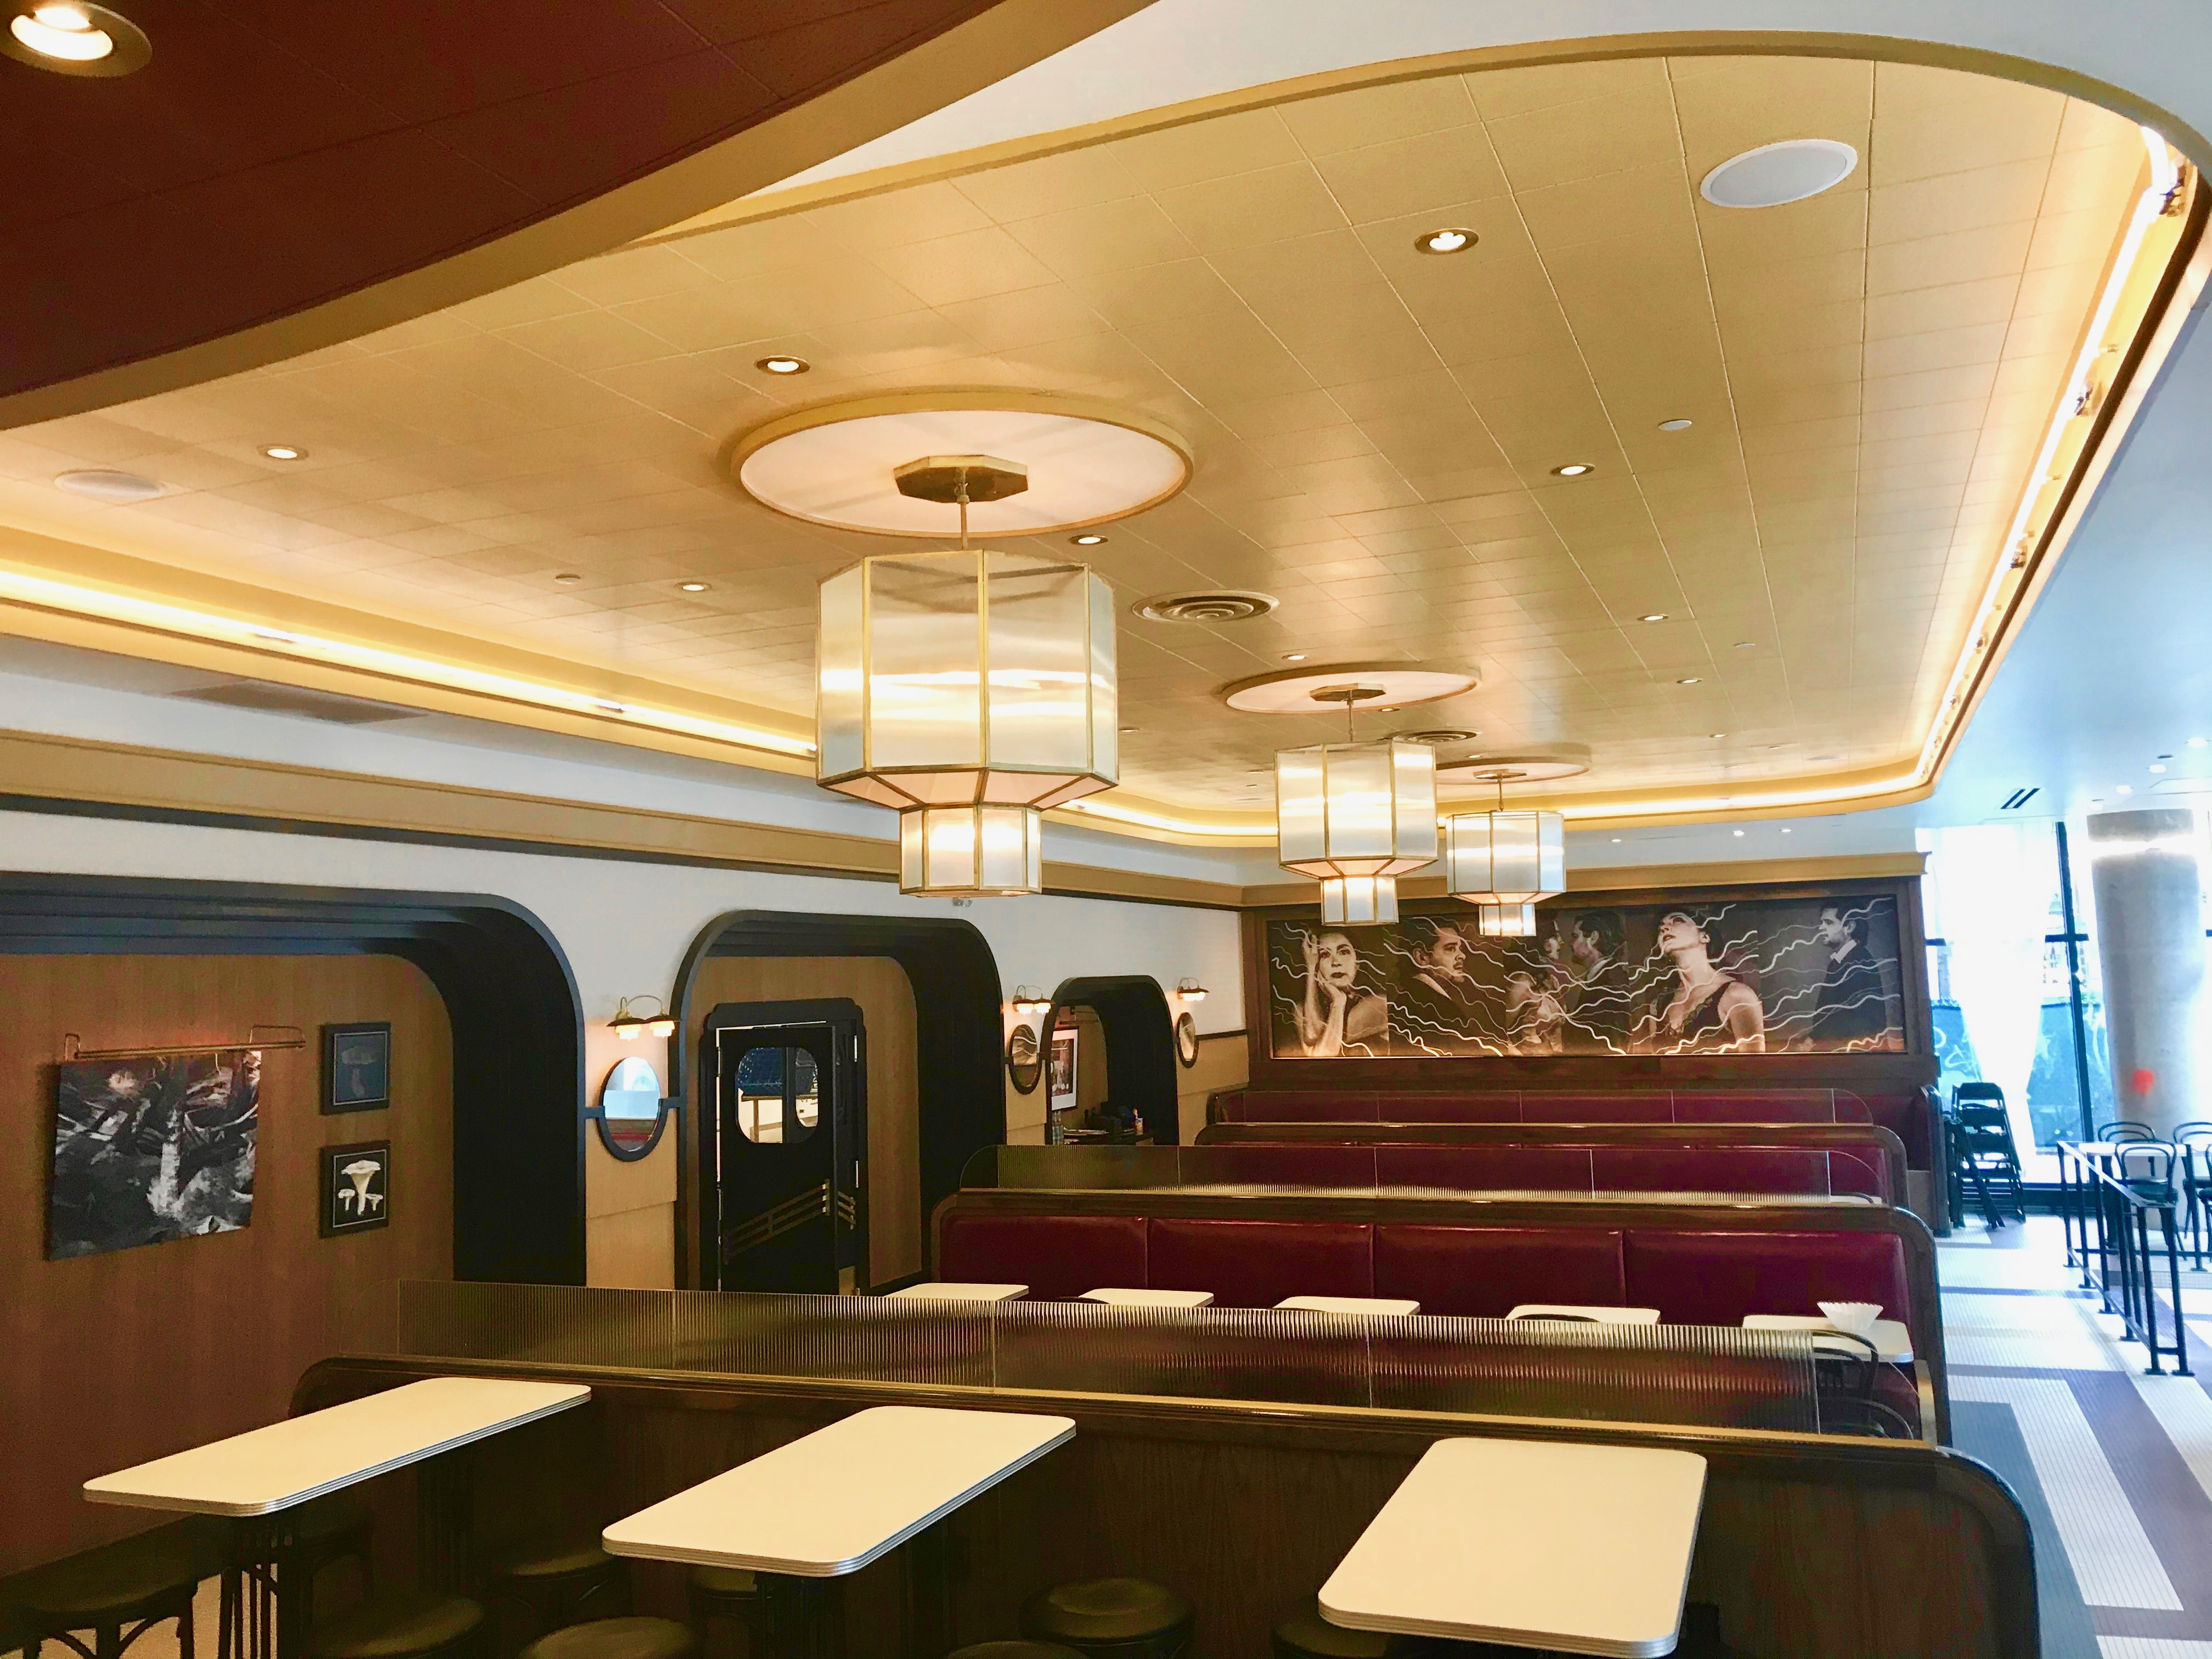 restaurant interior with red booths and art deco design